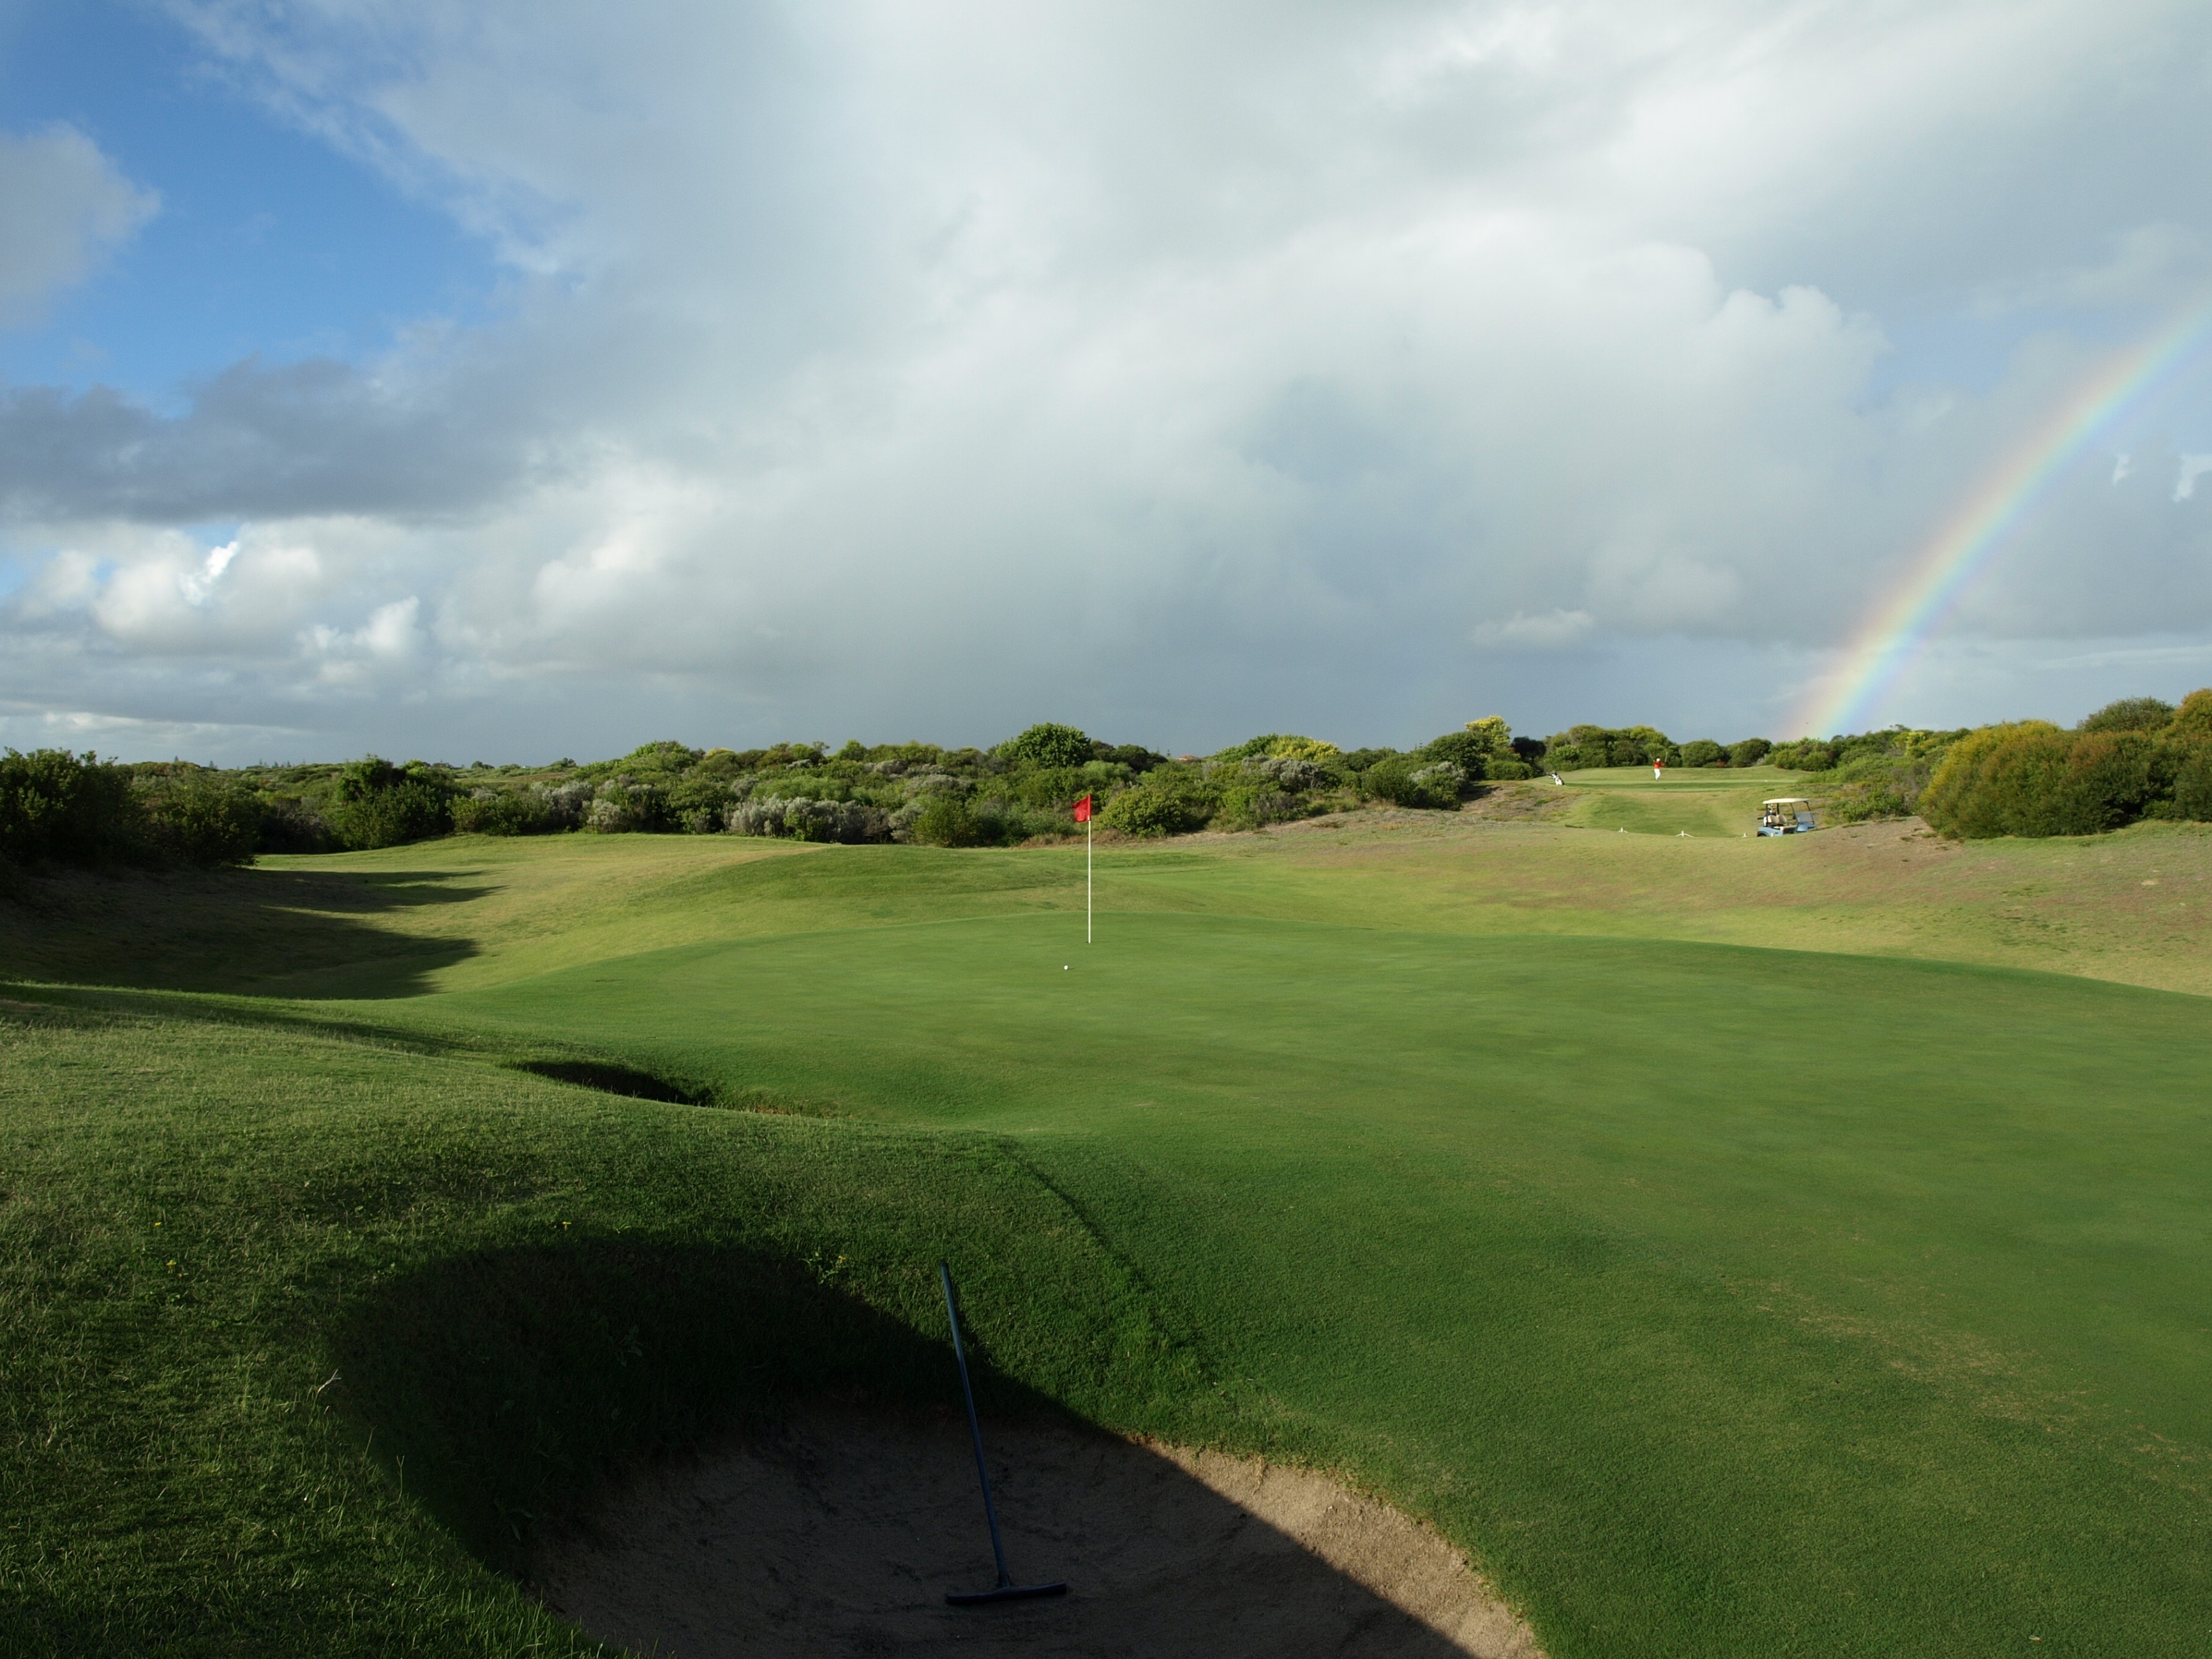 The 16th green at Links Kennedy Bay